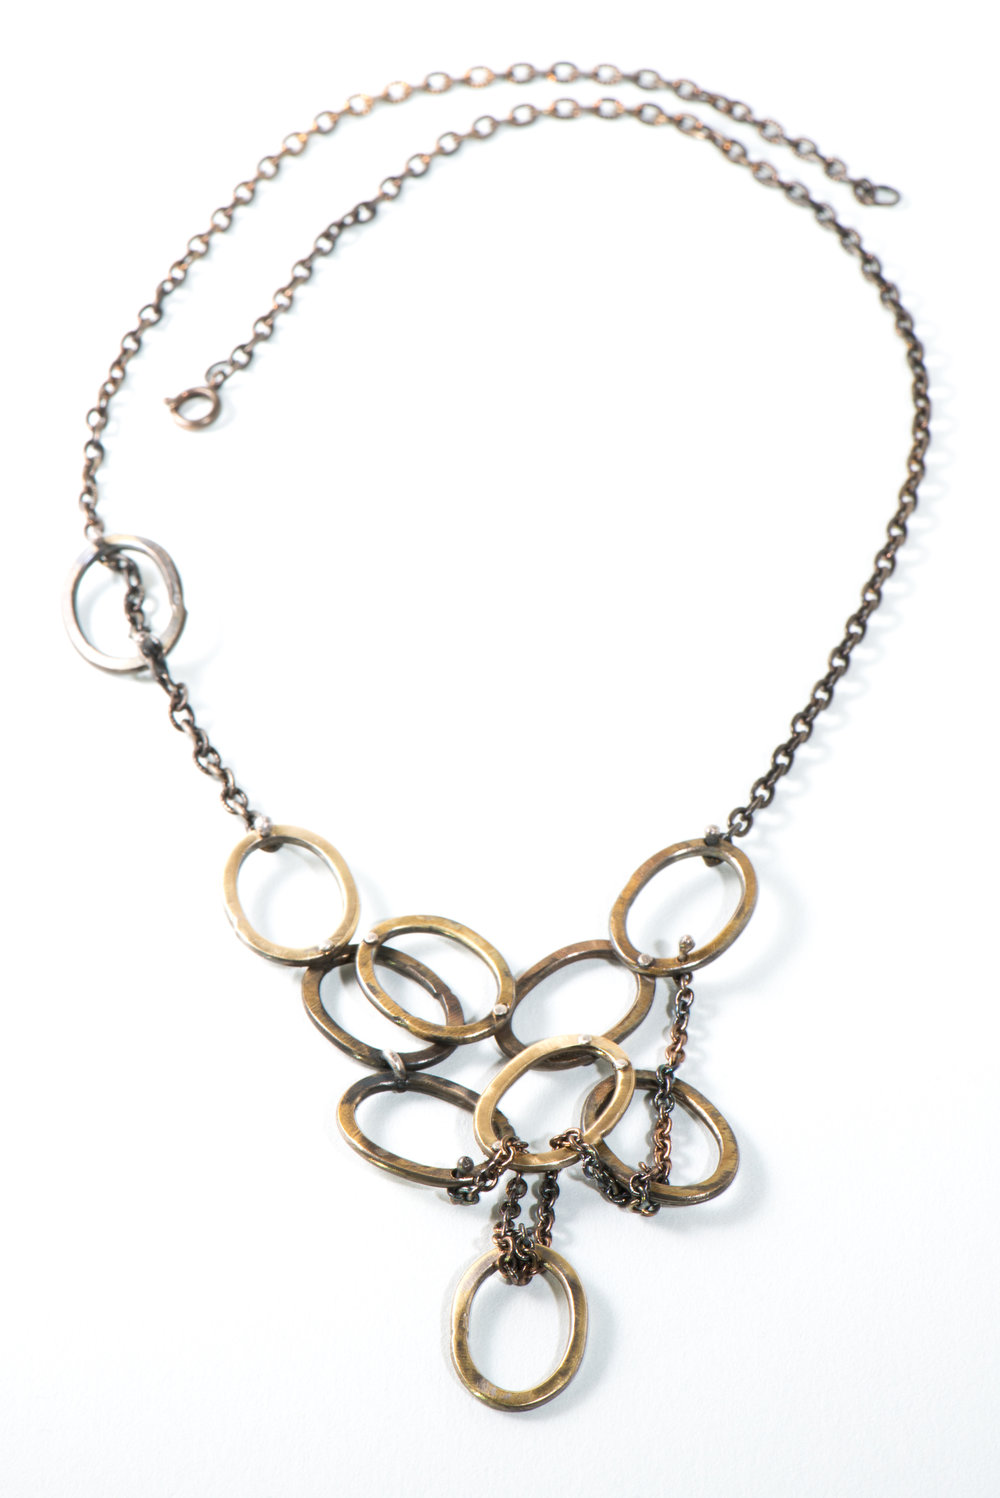 chain necklace.jpg